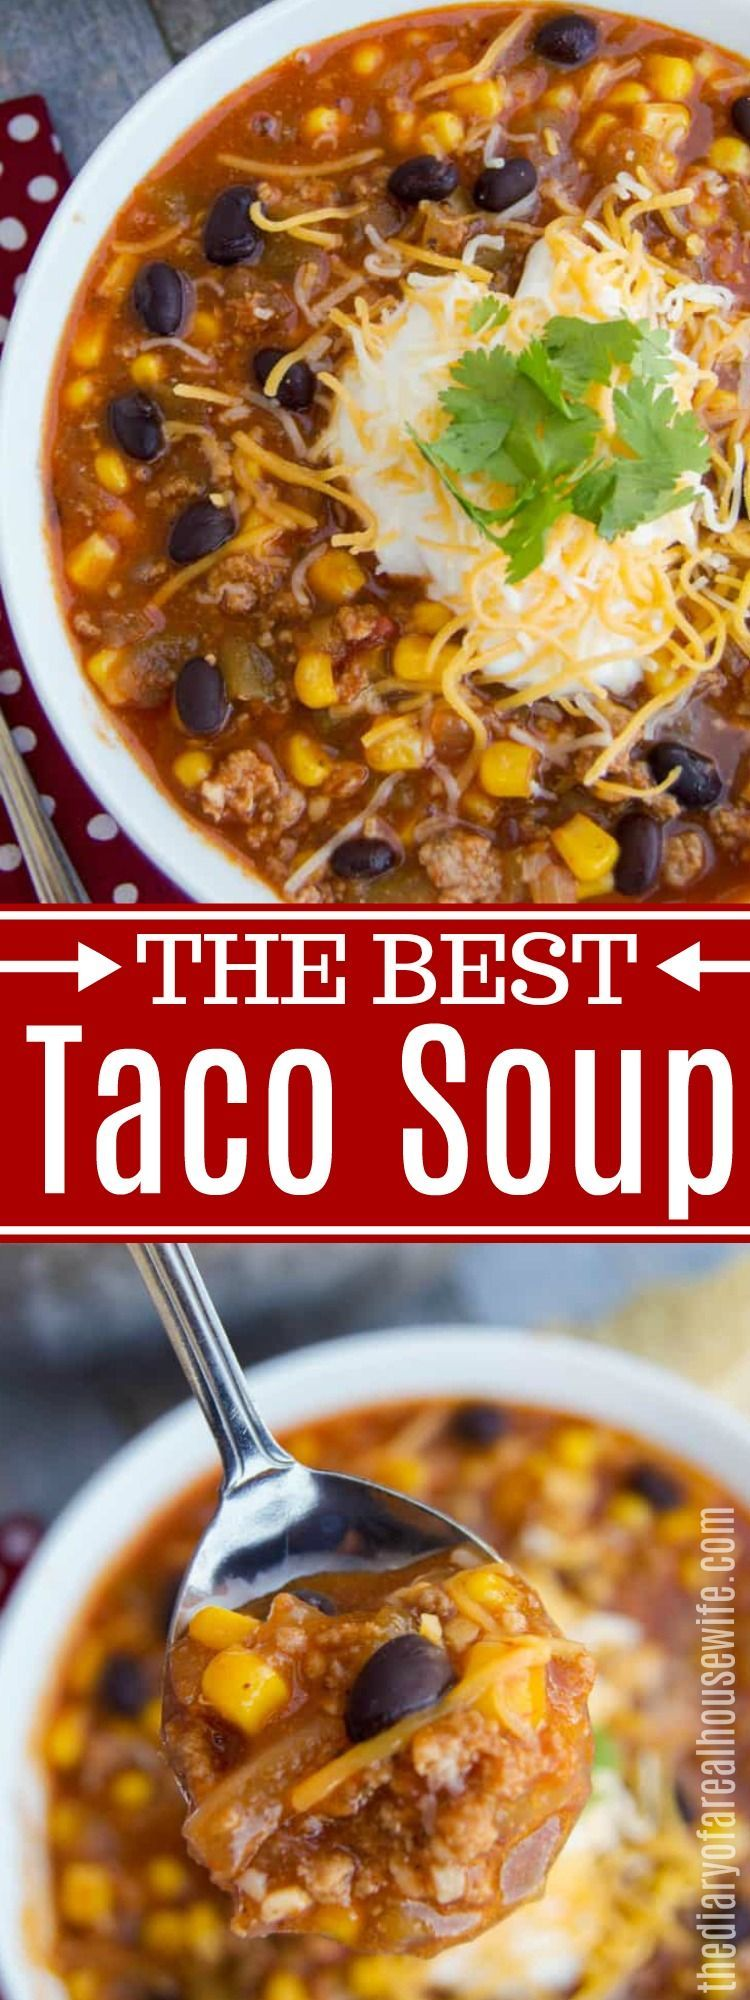 Taco Soup {WITH VIDEO!}